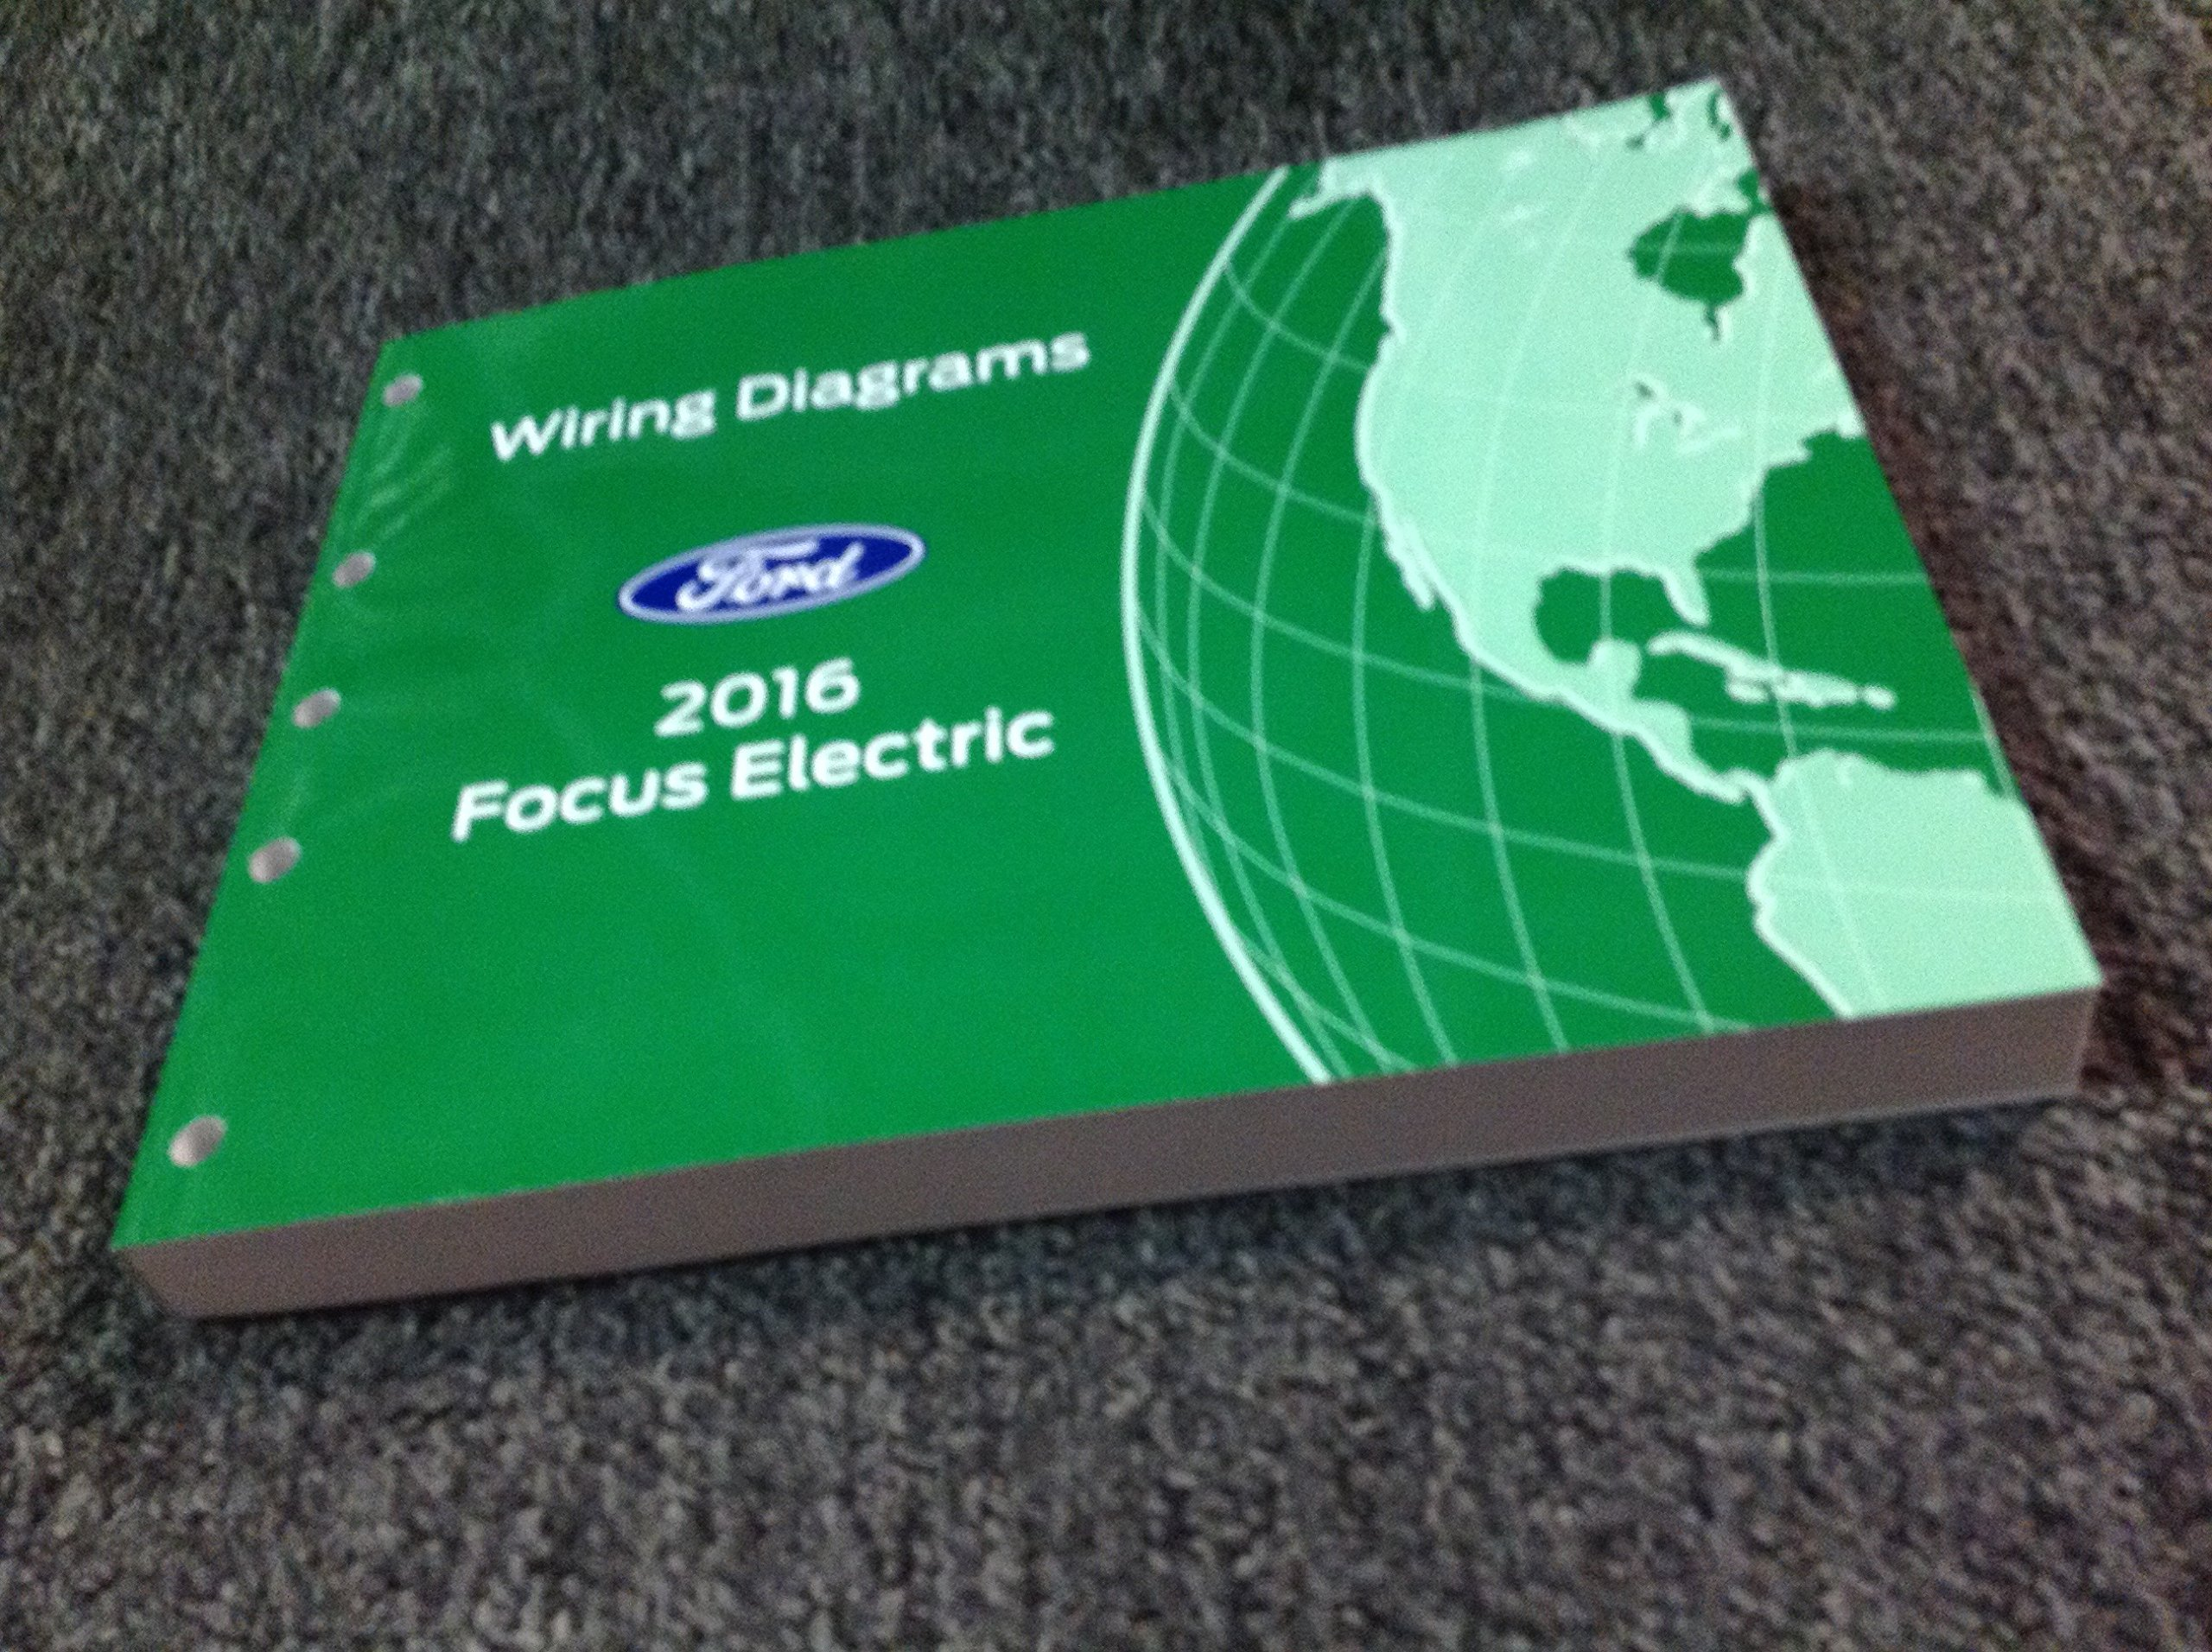 2016 FORD FOCUS ELECTRIC Electrical Wiring Diagram Manual ... Ford Focus Electric Wiring Diagram on ford bronco wiring diagram, ford f-250 wiring diagram, ford lcf wiring diagram, ford probe wiring diagram, ford model t wiring diagram, ford festiva wiring diagram, ford edge wiring diagram,